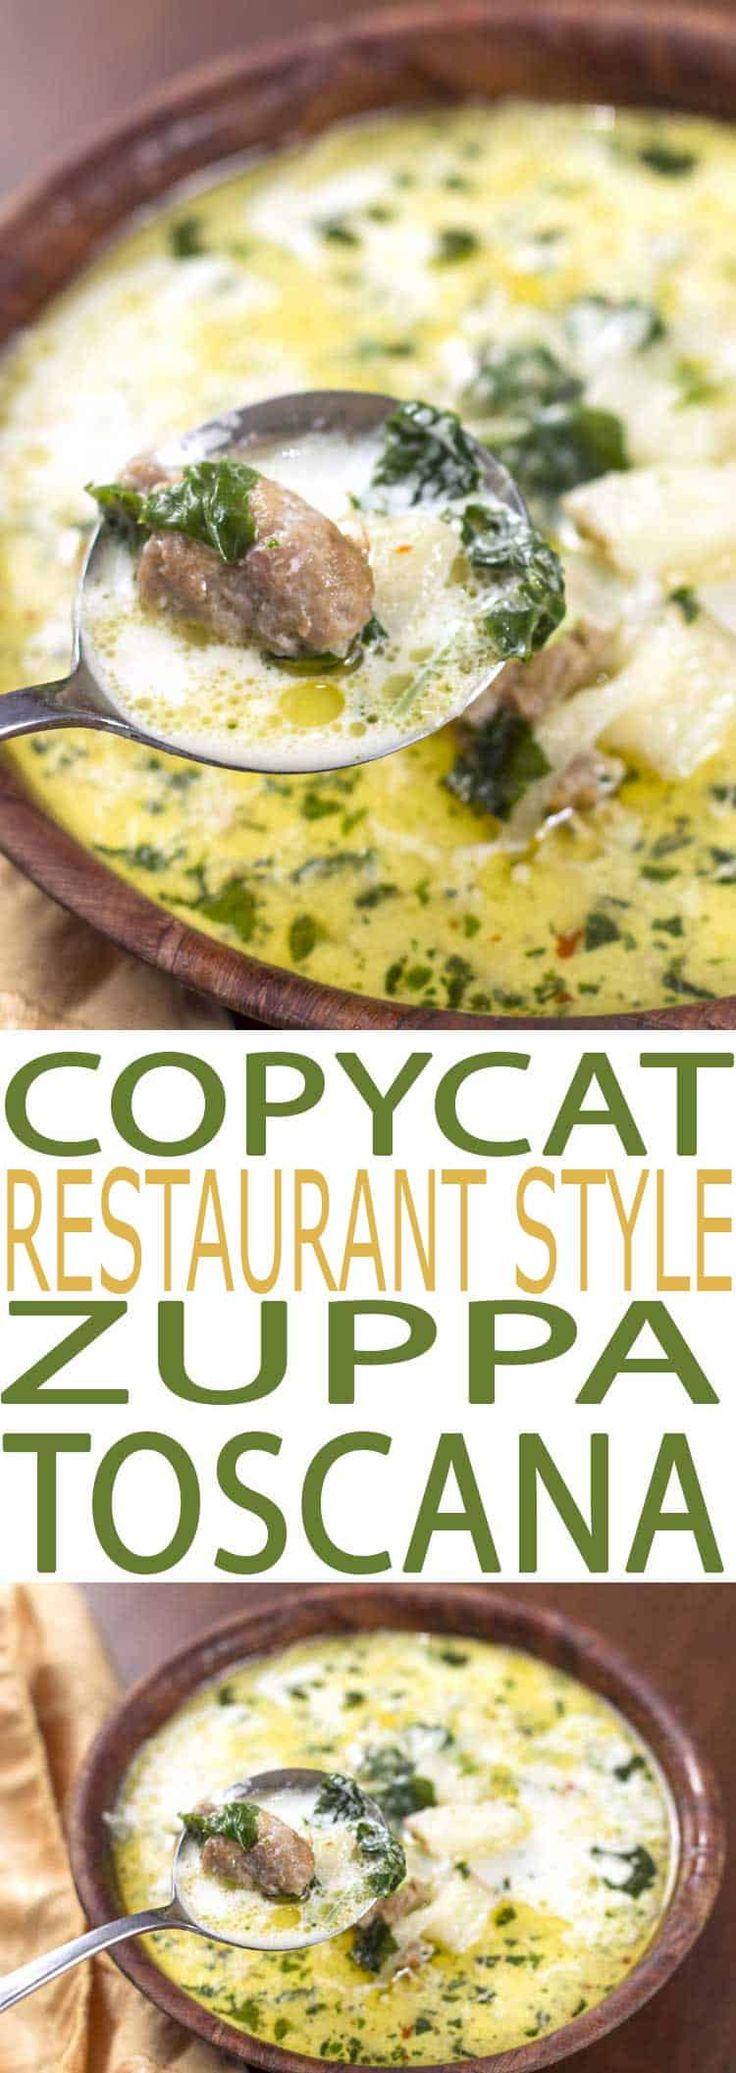 *can use honeysuckle turkey sausage* Zuppa Toscana Soup is a flavorful recipe that's both easy to eat and to make. It is filled with healthful kale, a superfood full of essential nutrients.